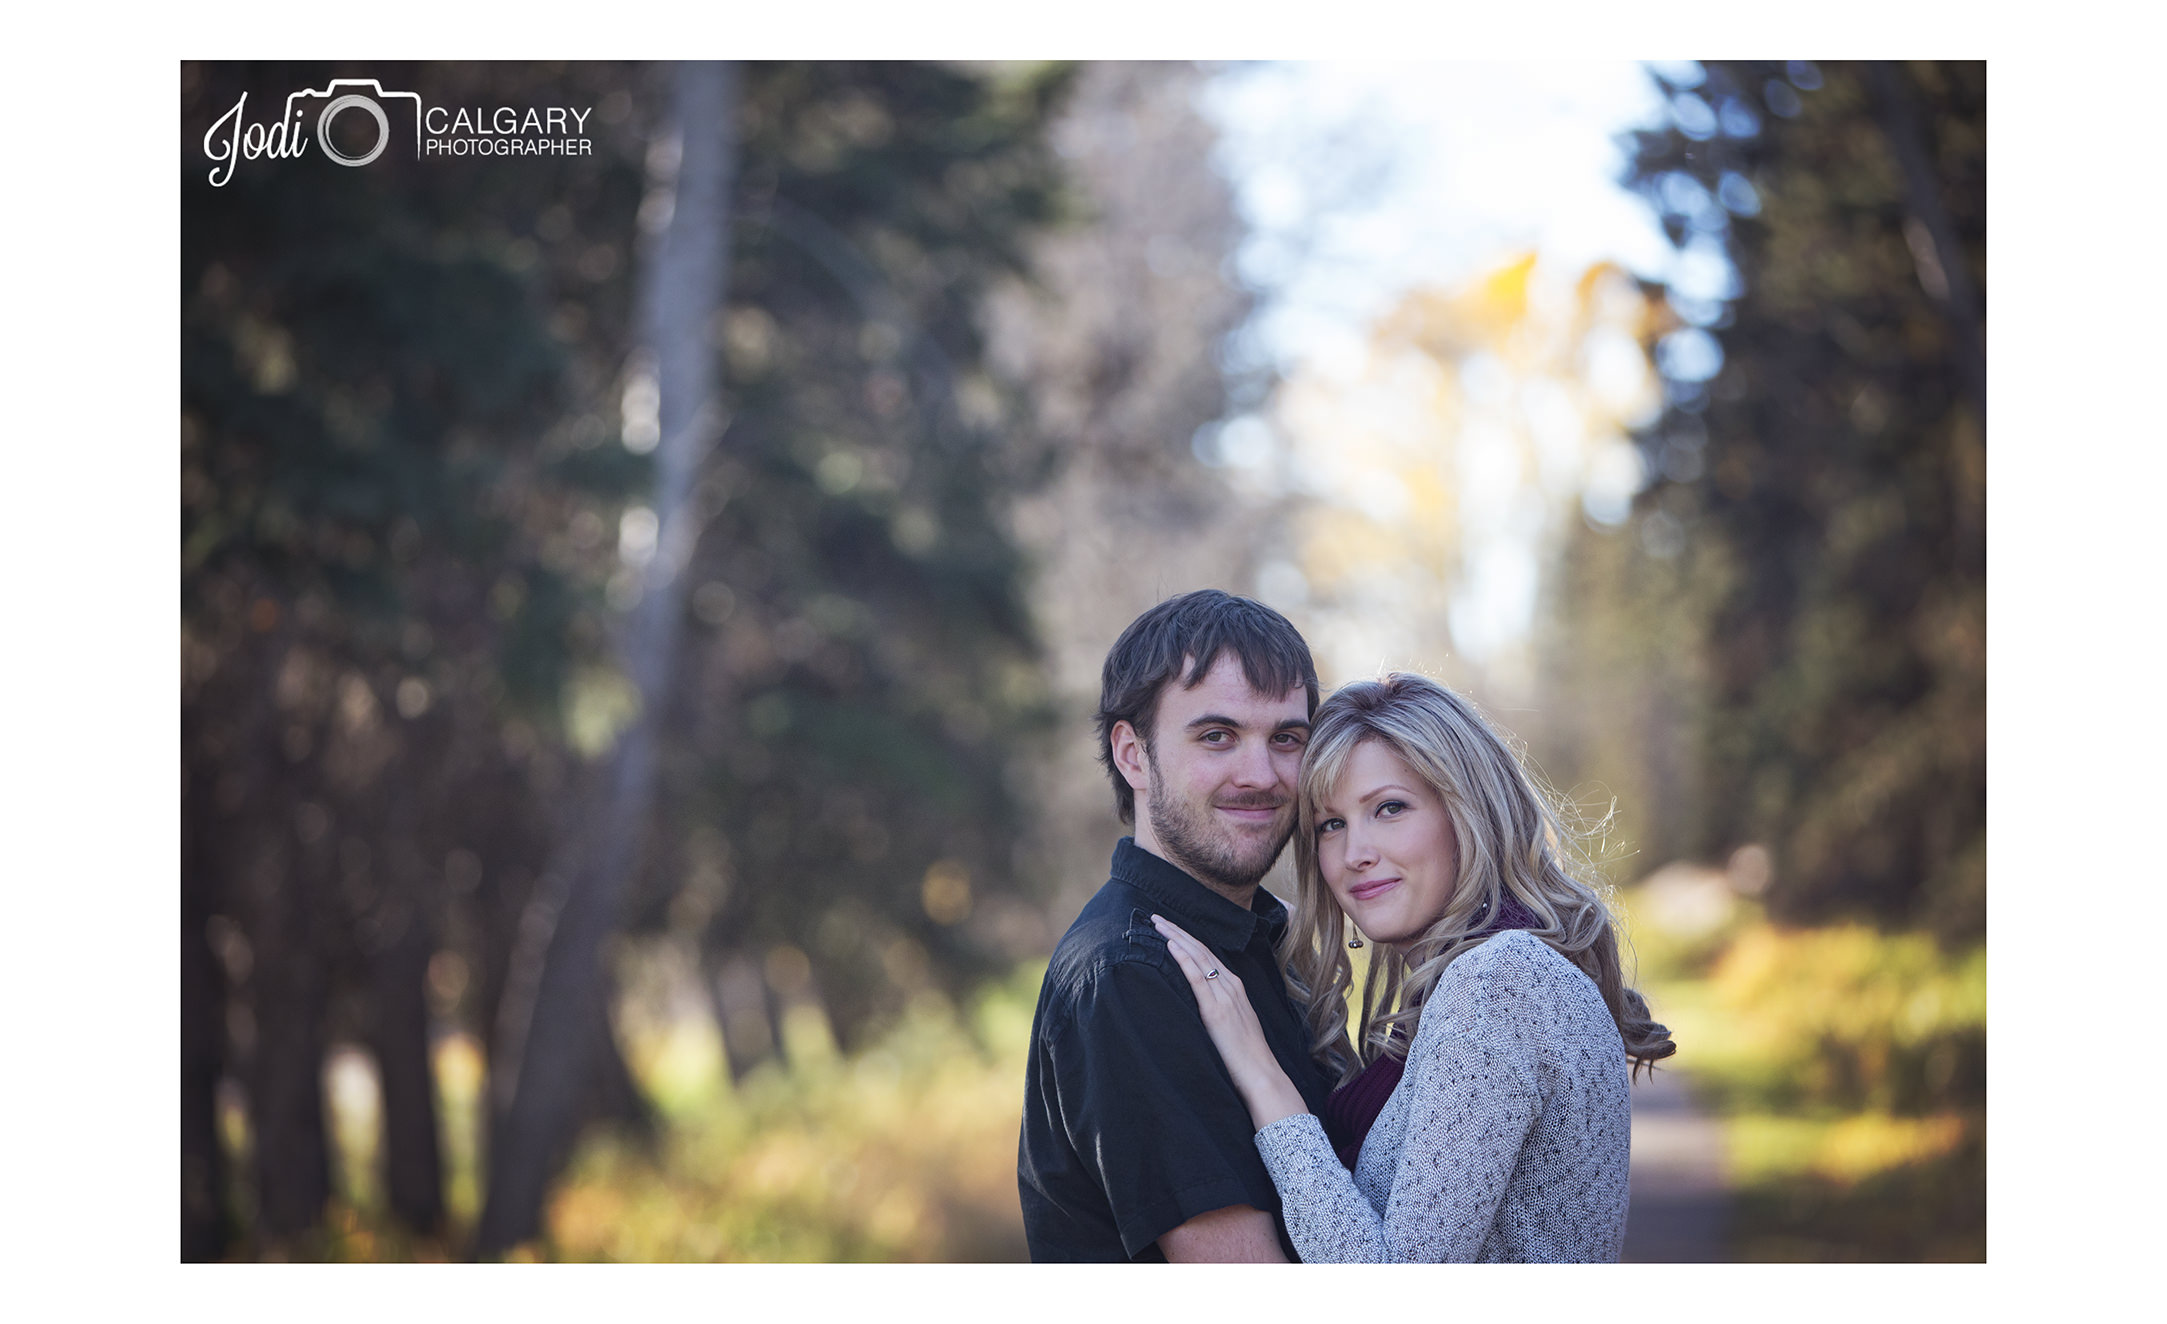 Time For Calgary Wedding Photography